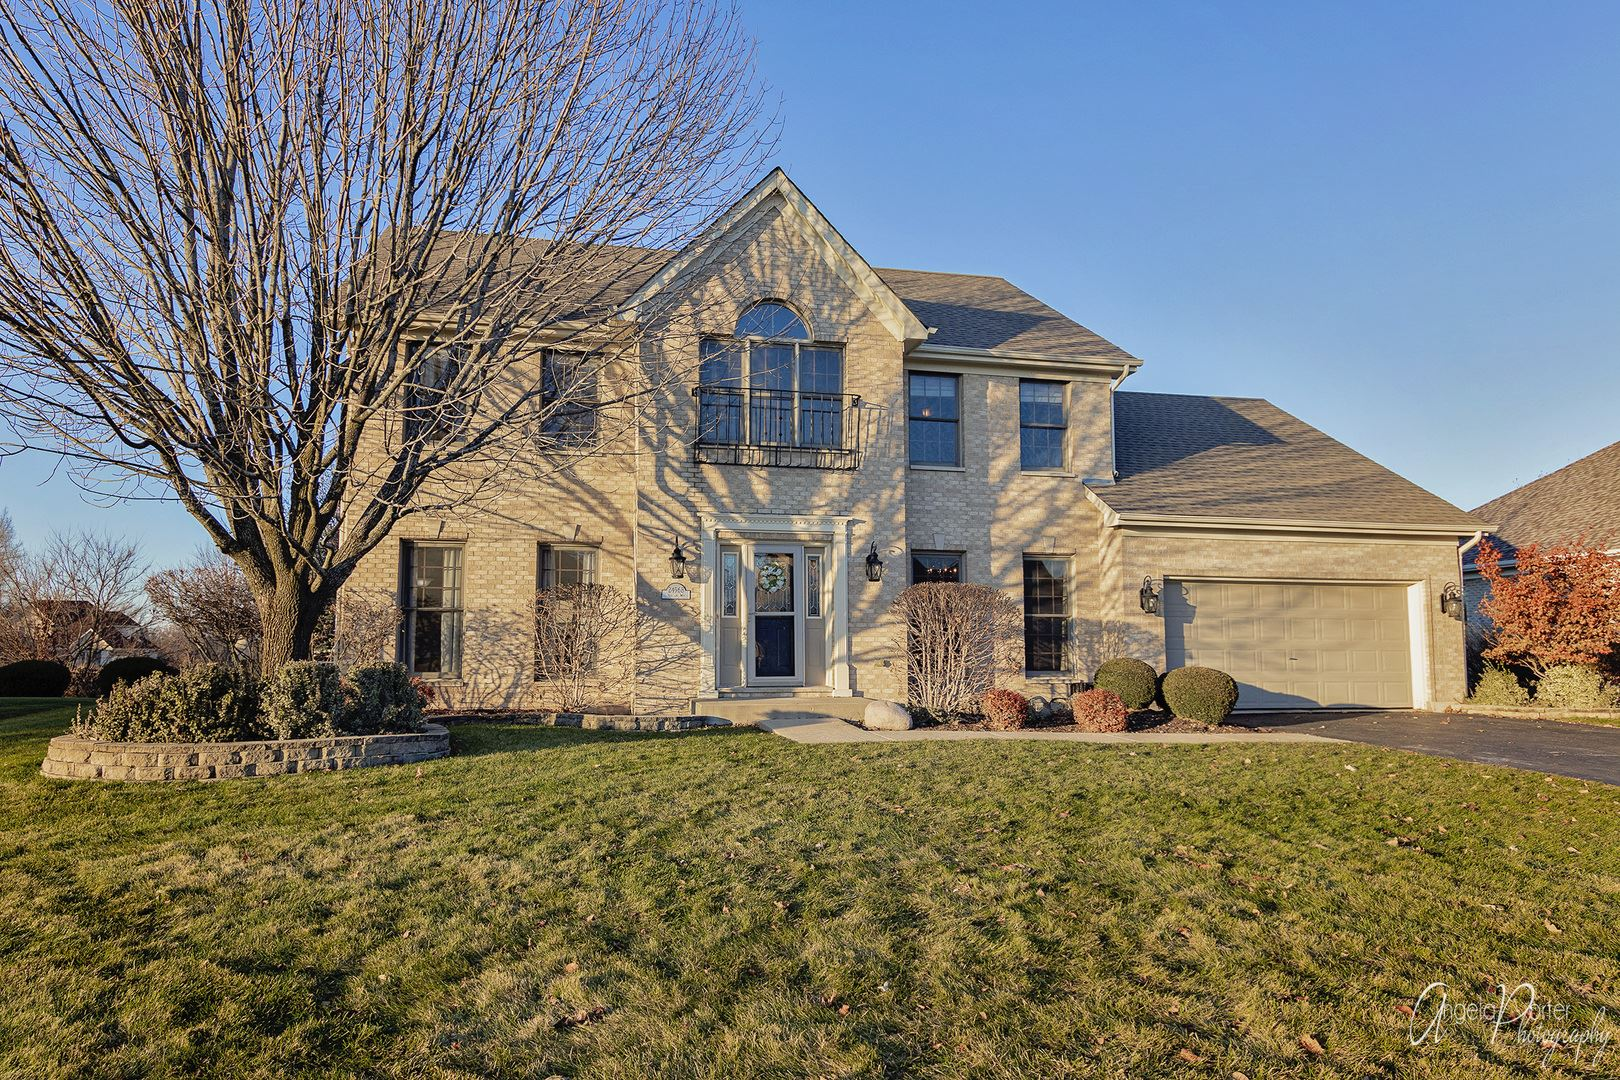 24968 W Nicklaus Way, Antioch, IL 60002 - #: 10666102